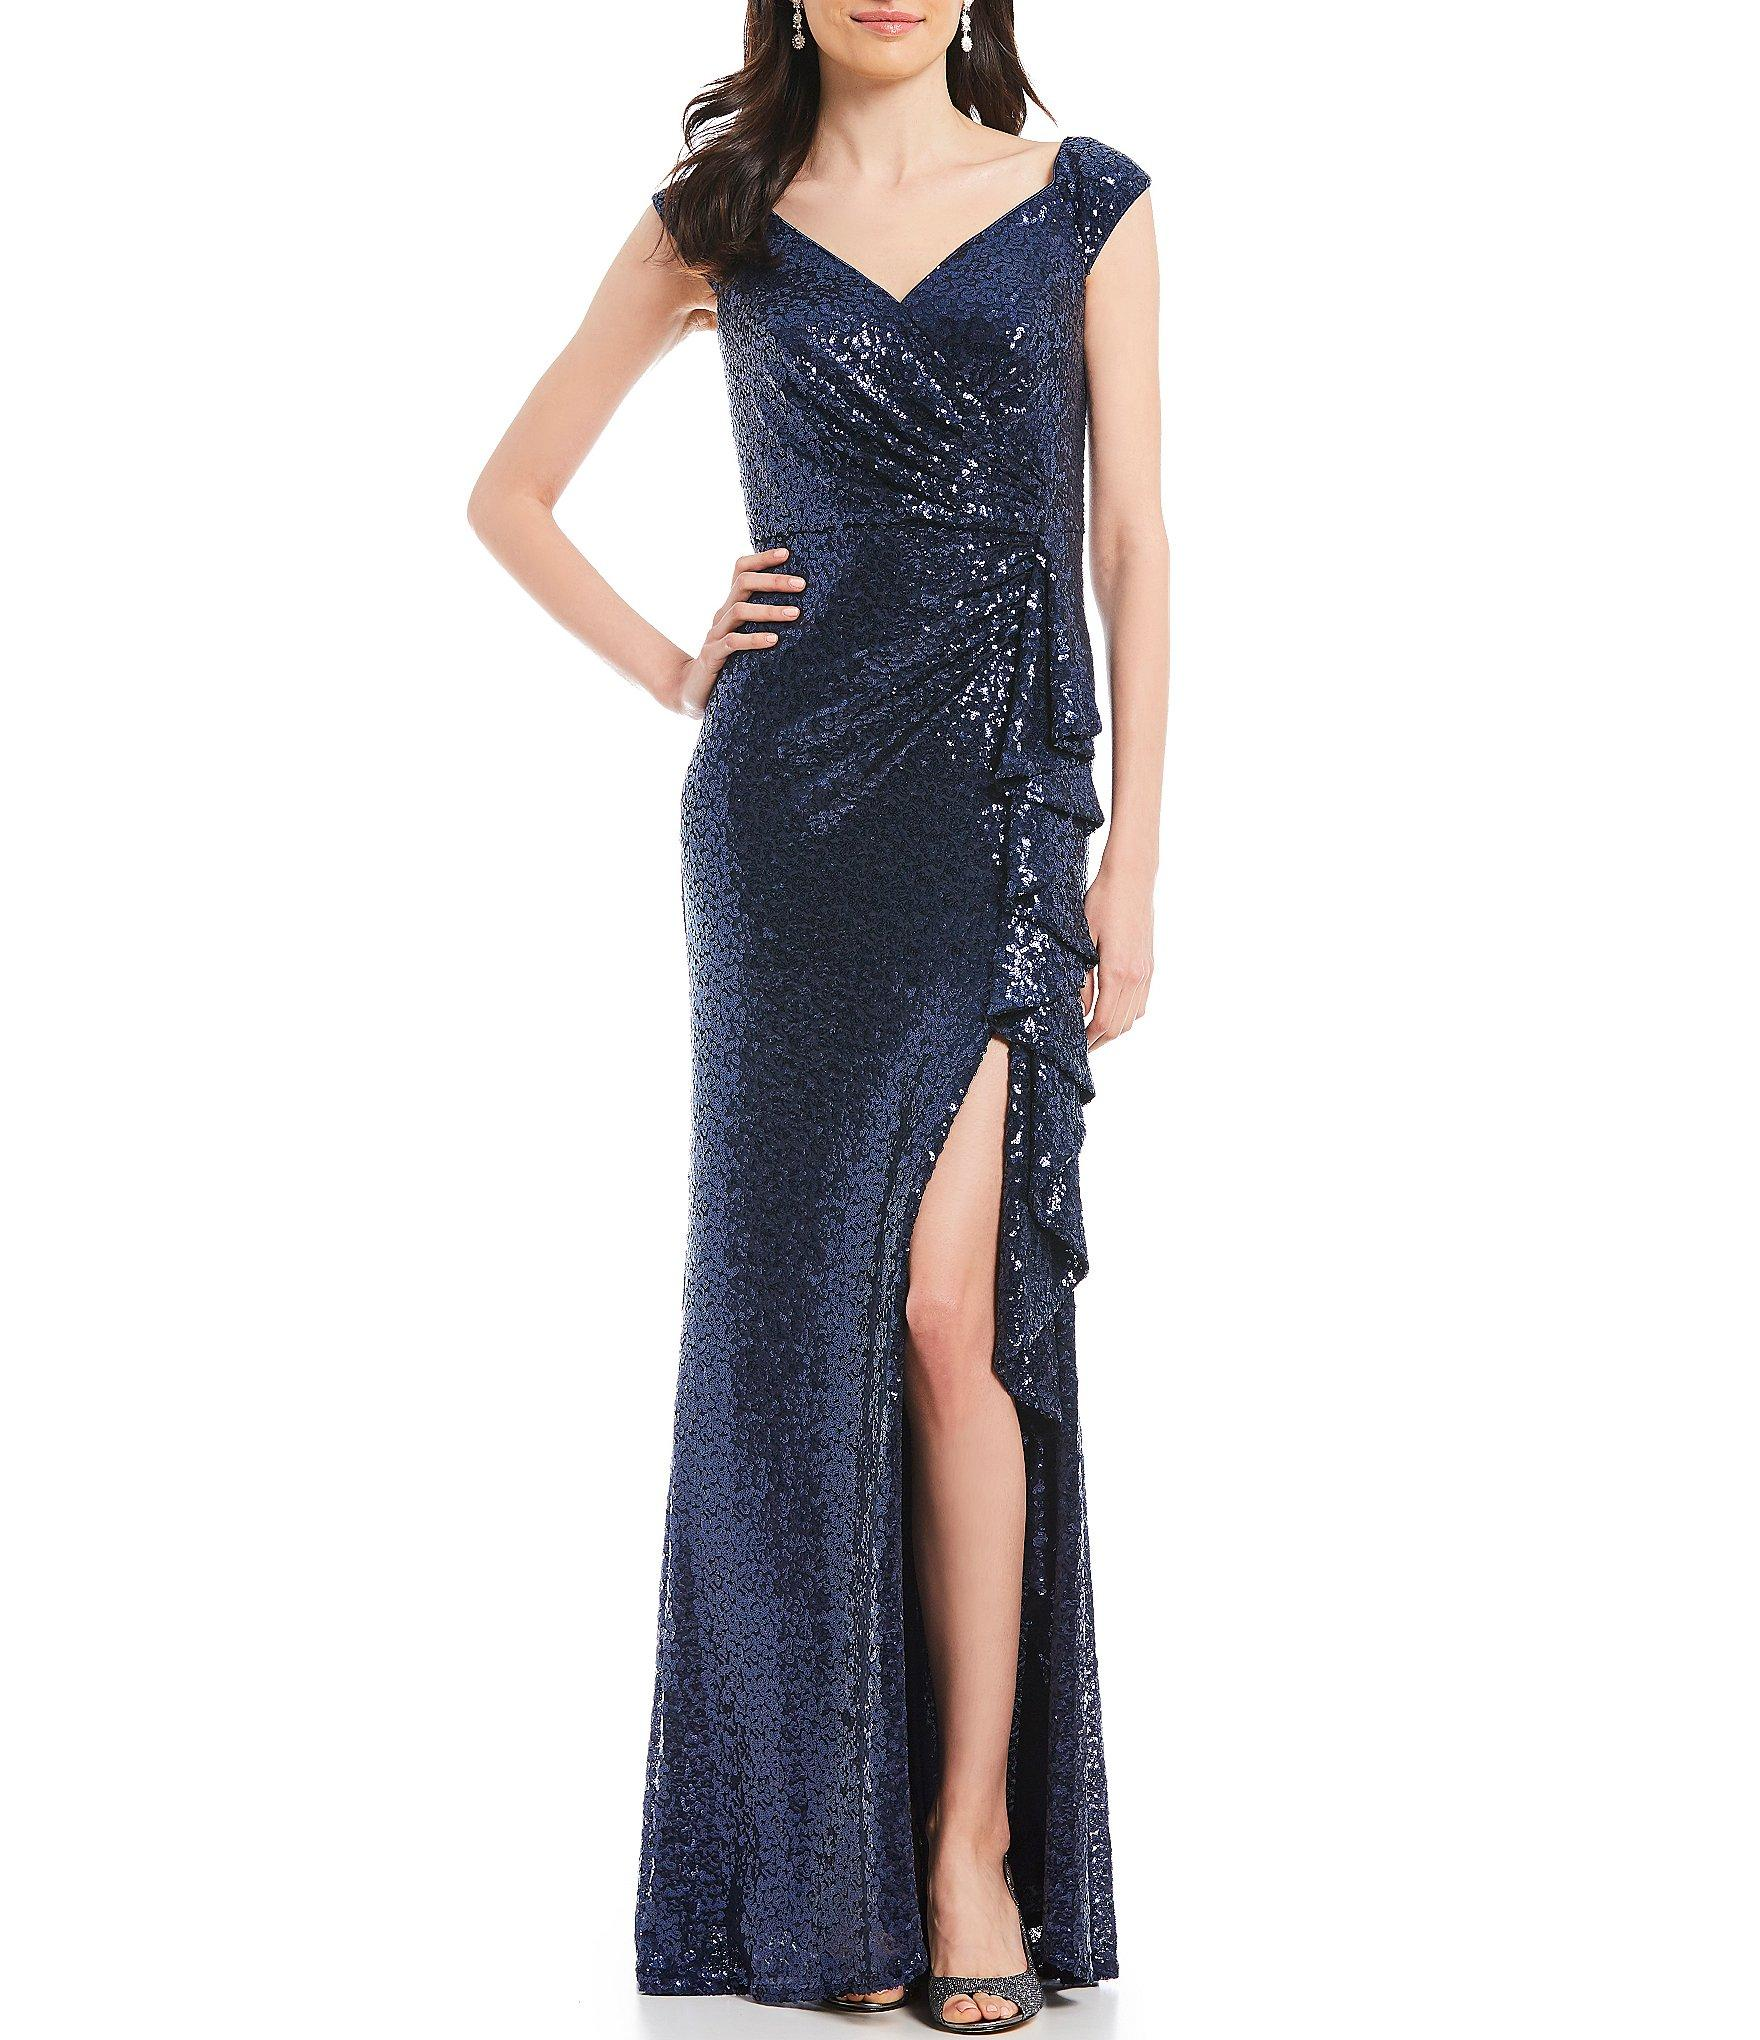 c27afe6c078 Lyst - Tadashi Shoji Off-the-shoulder Sequin Gown in Blue